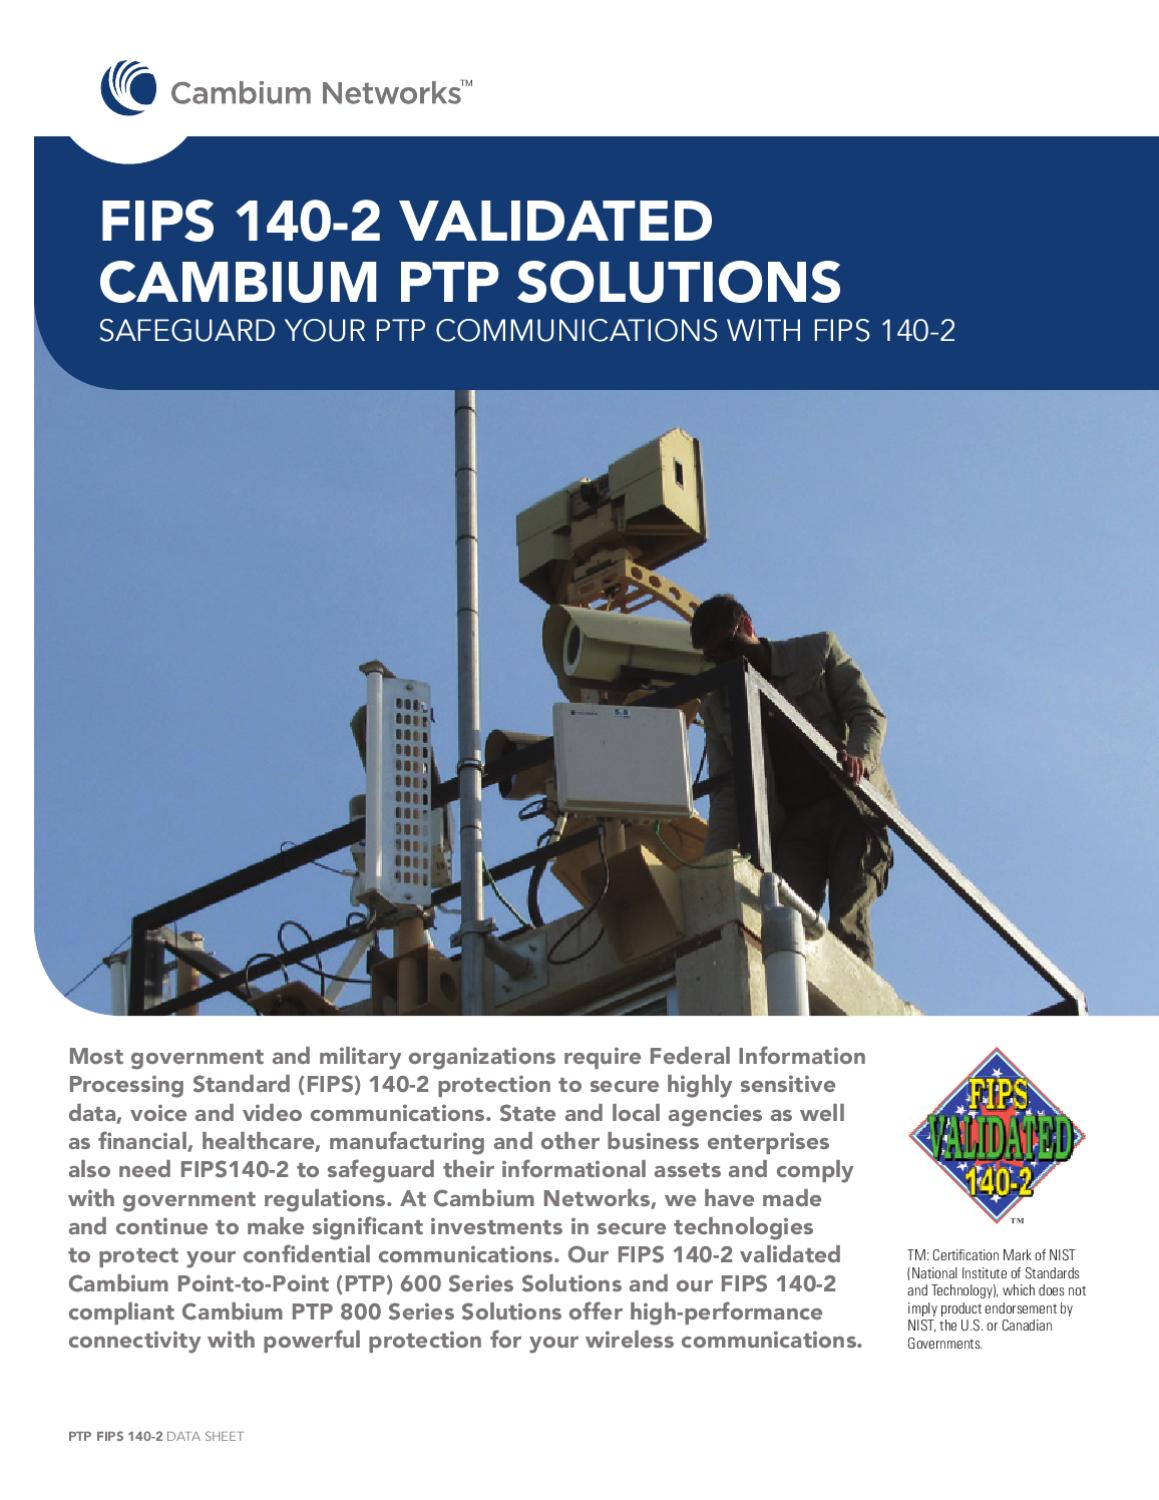 Cn Fips 140 2 Ds 011812 Final By Advantec Distribution Issuu